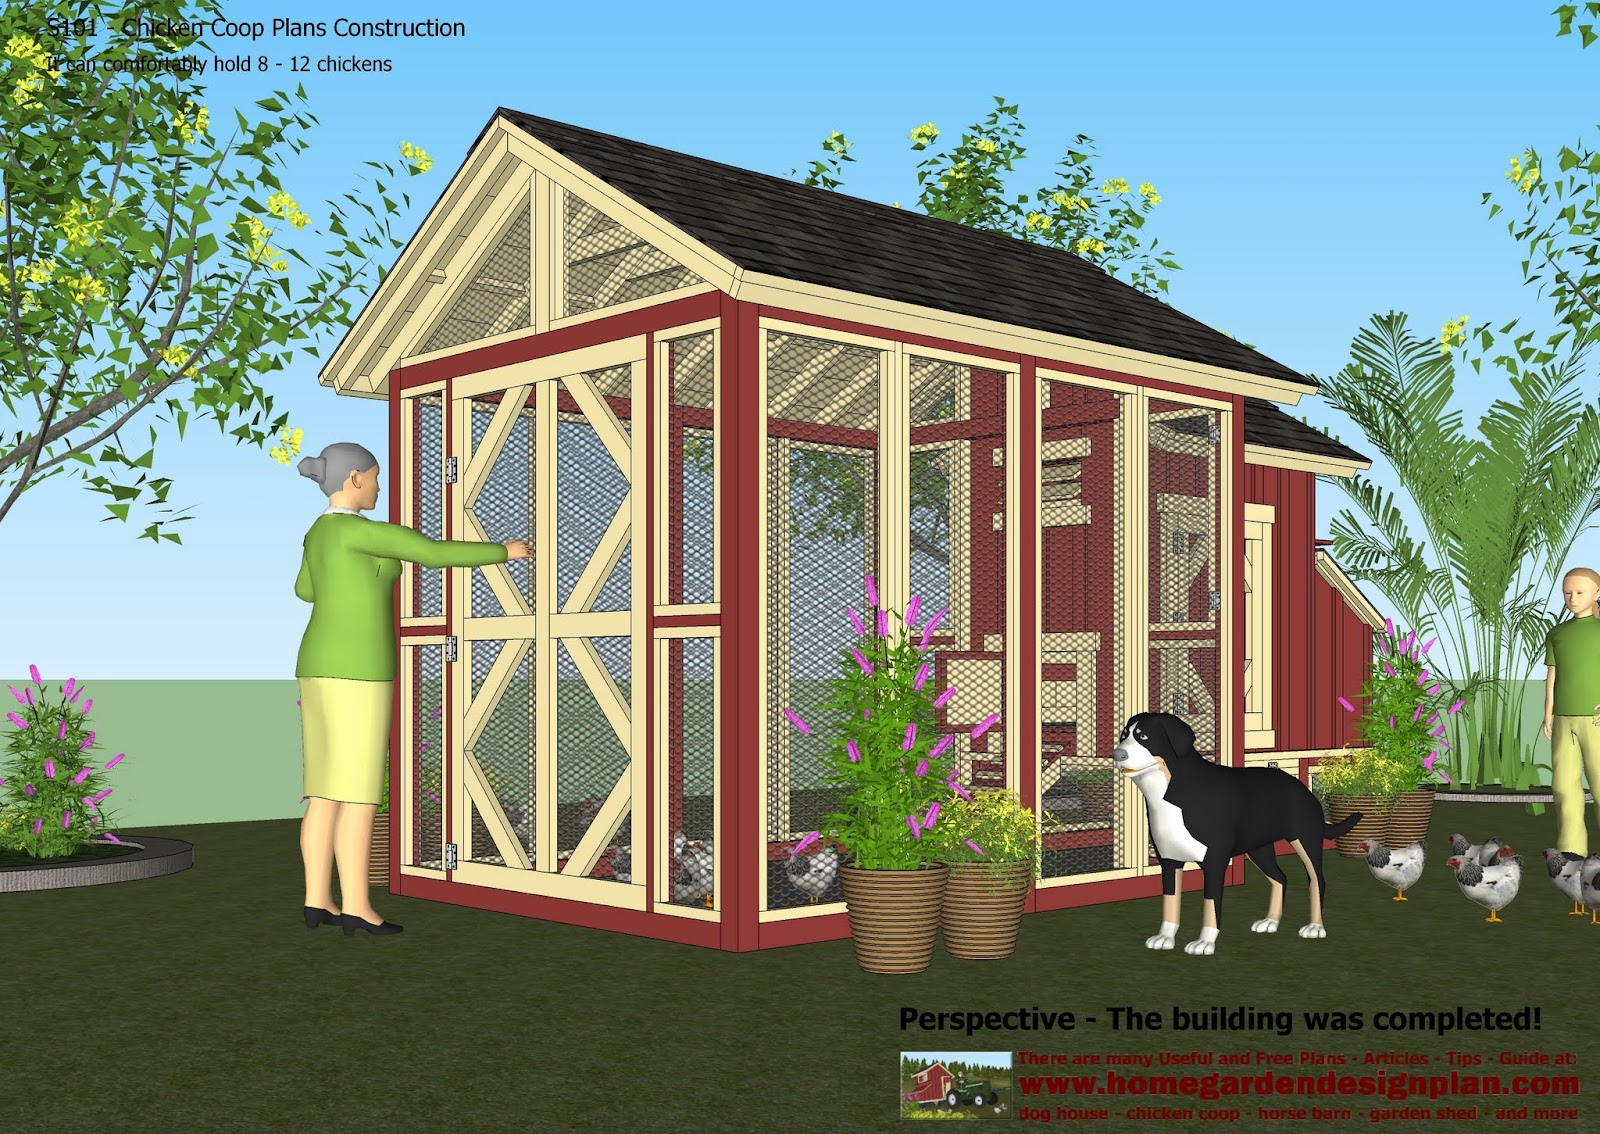 home garden plans s101 chicken coop plans construction